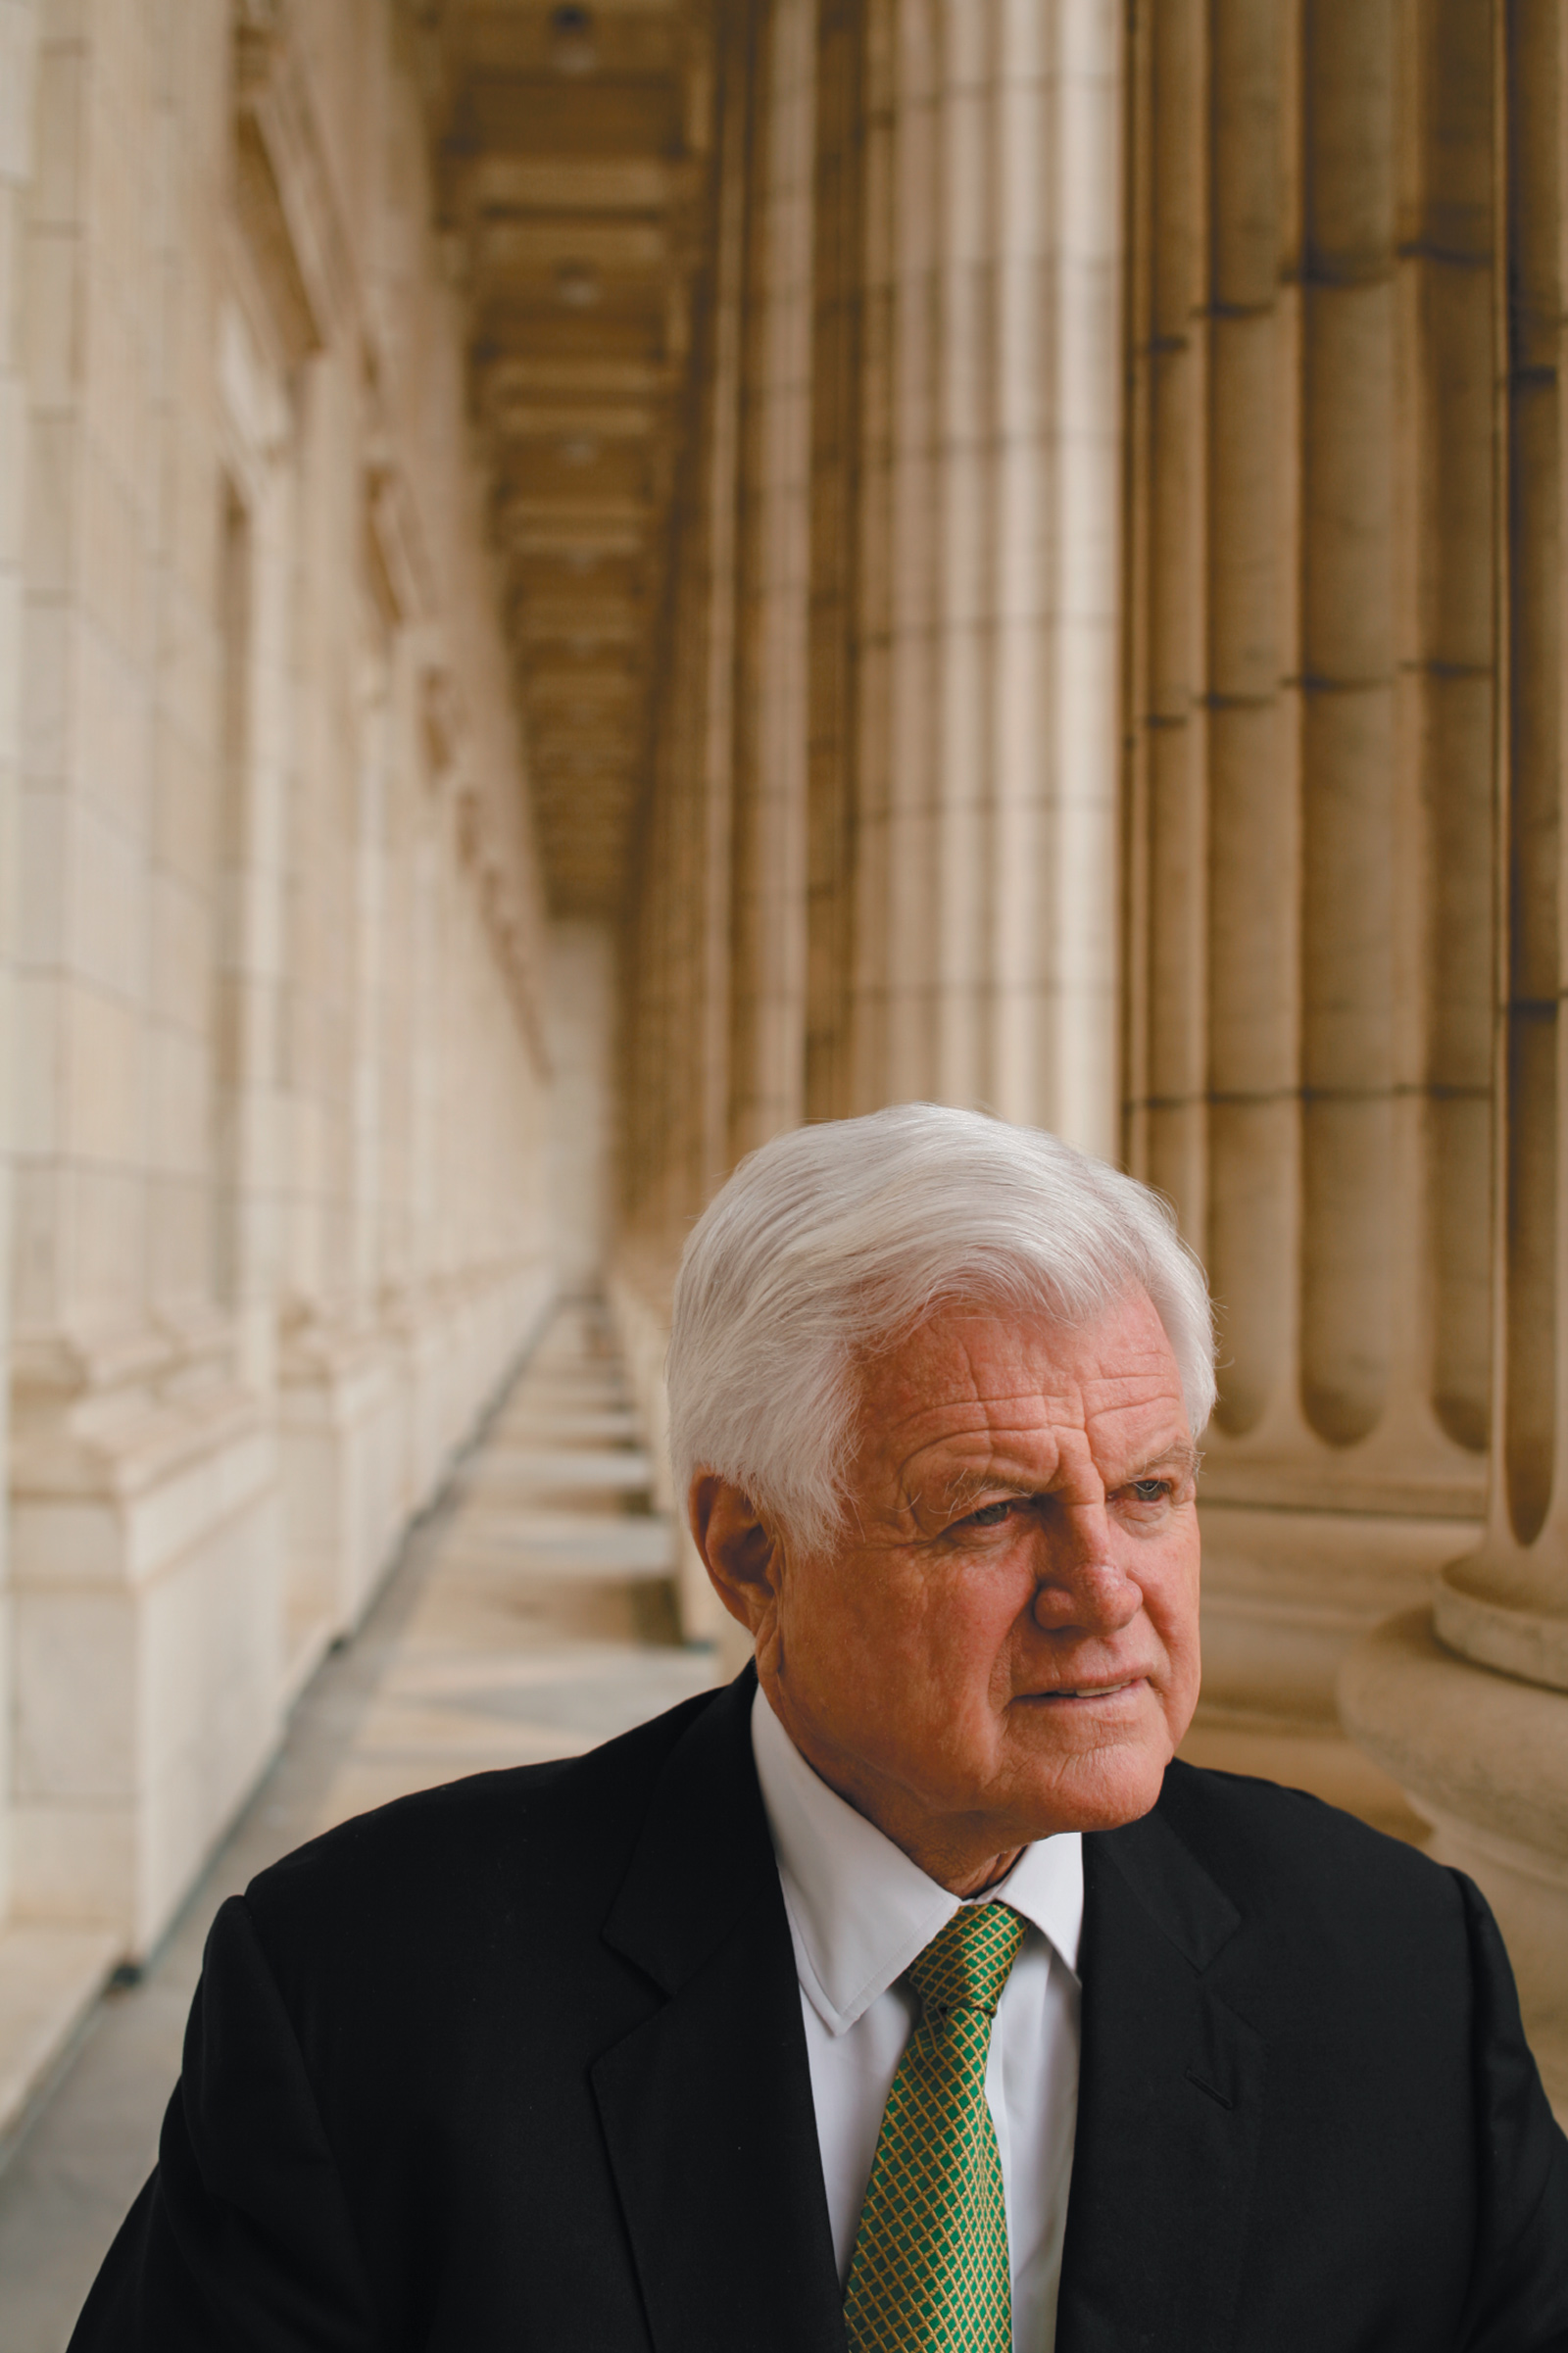 Ted Kennedy outside his office at the Russell Senate Office Building, Washington, D.C., March 2006